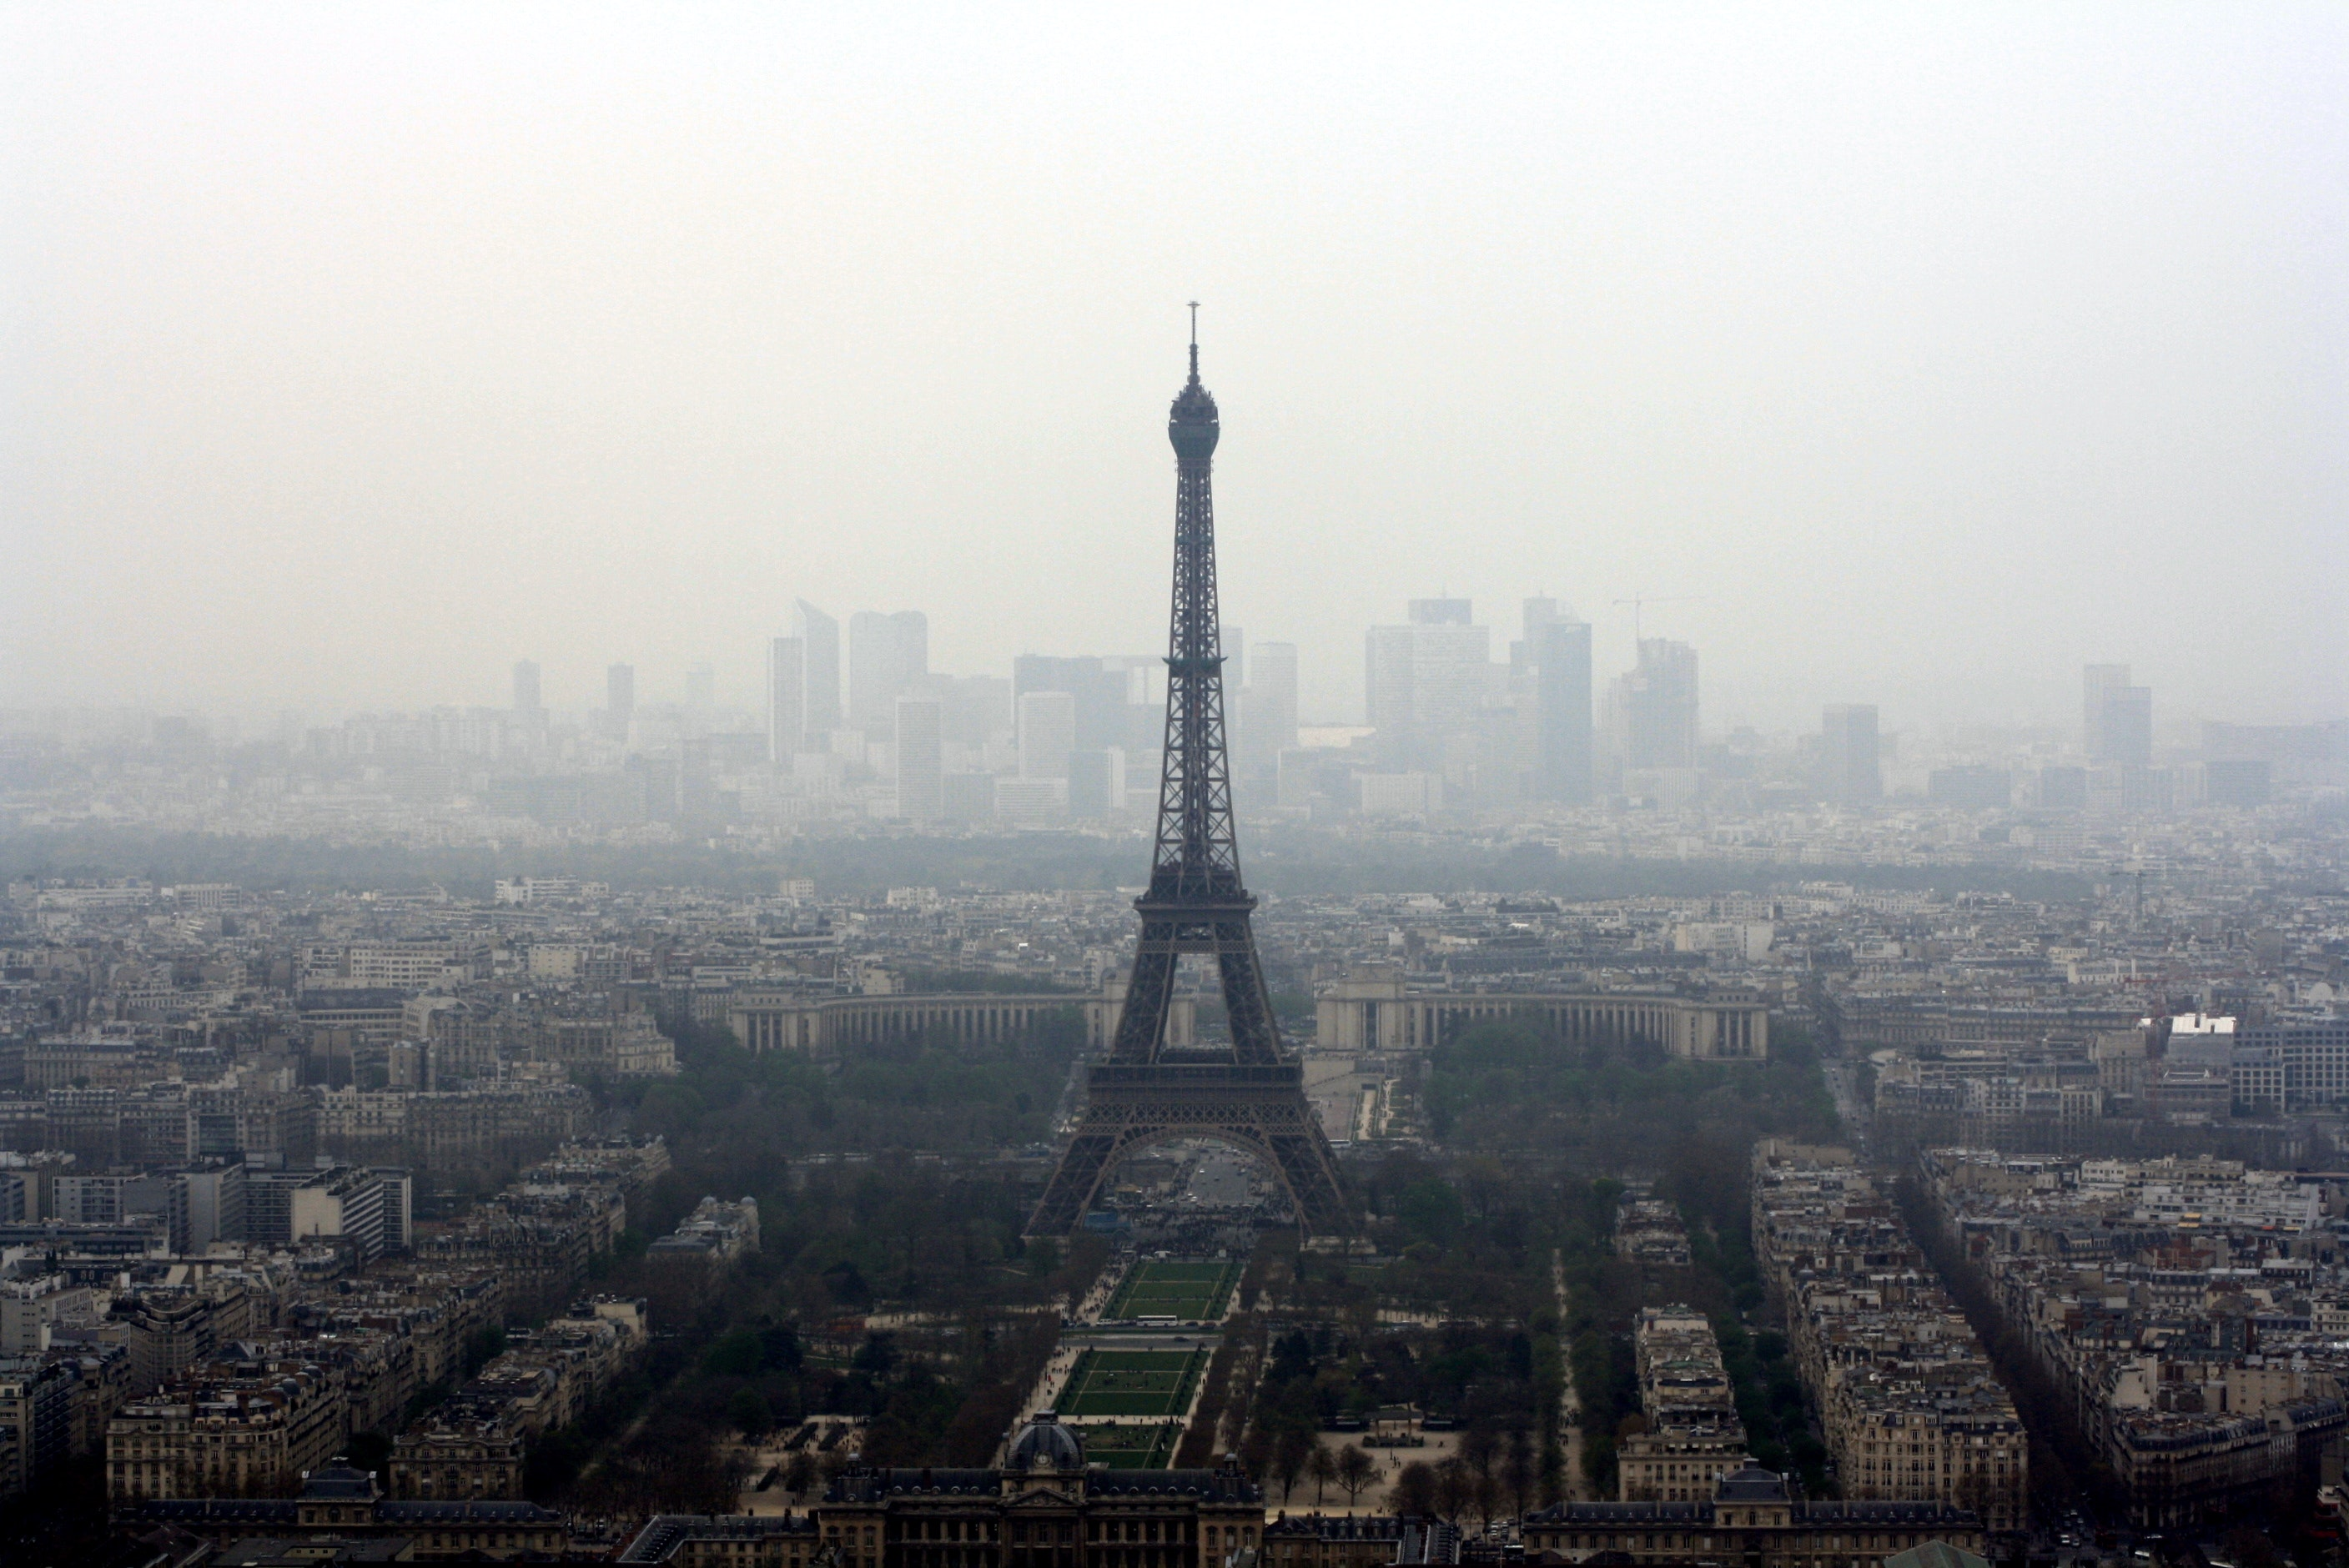 Eiffel tower view in foggy weather photo